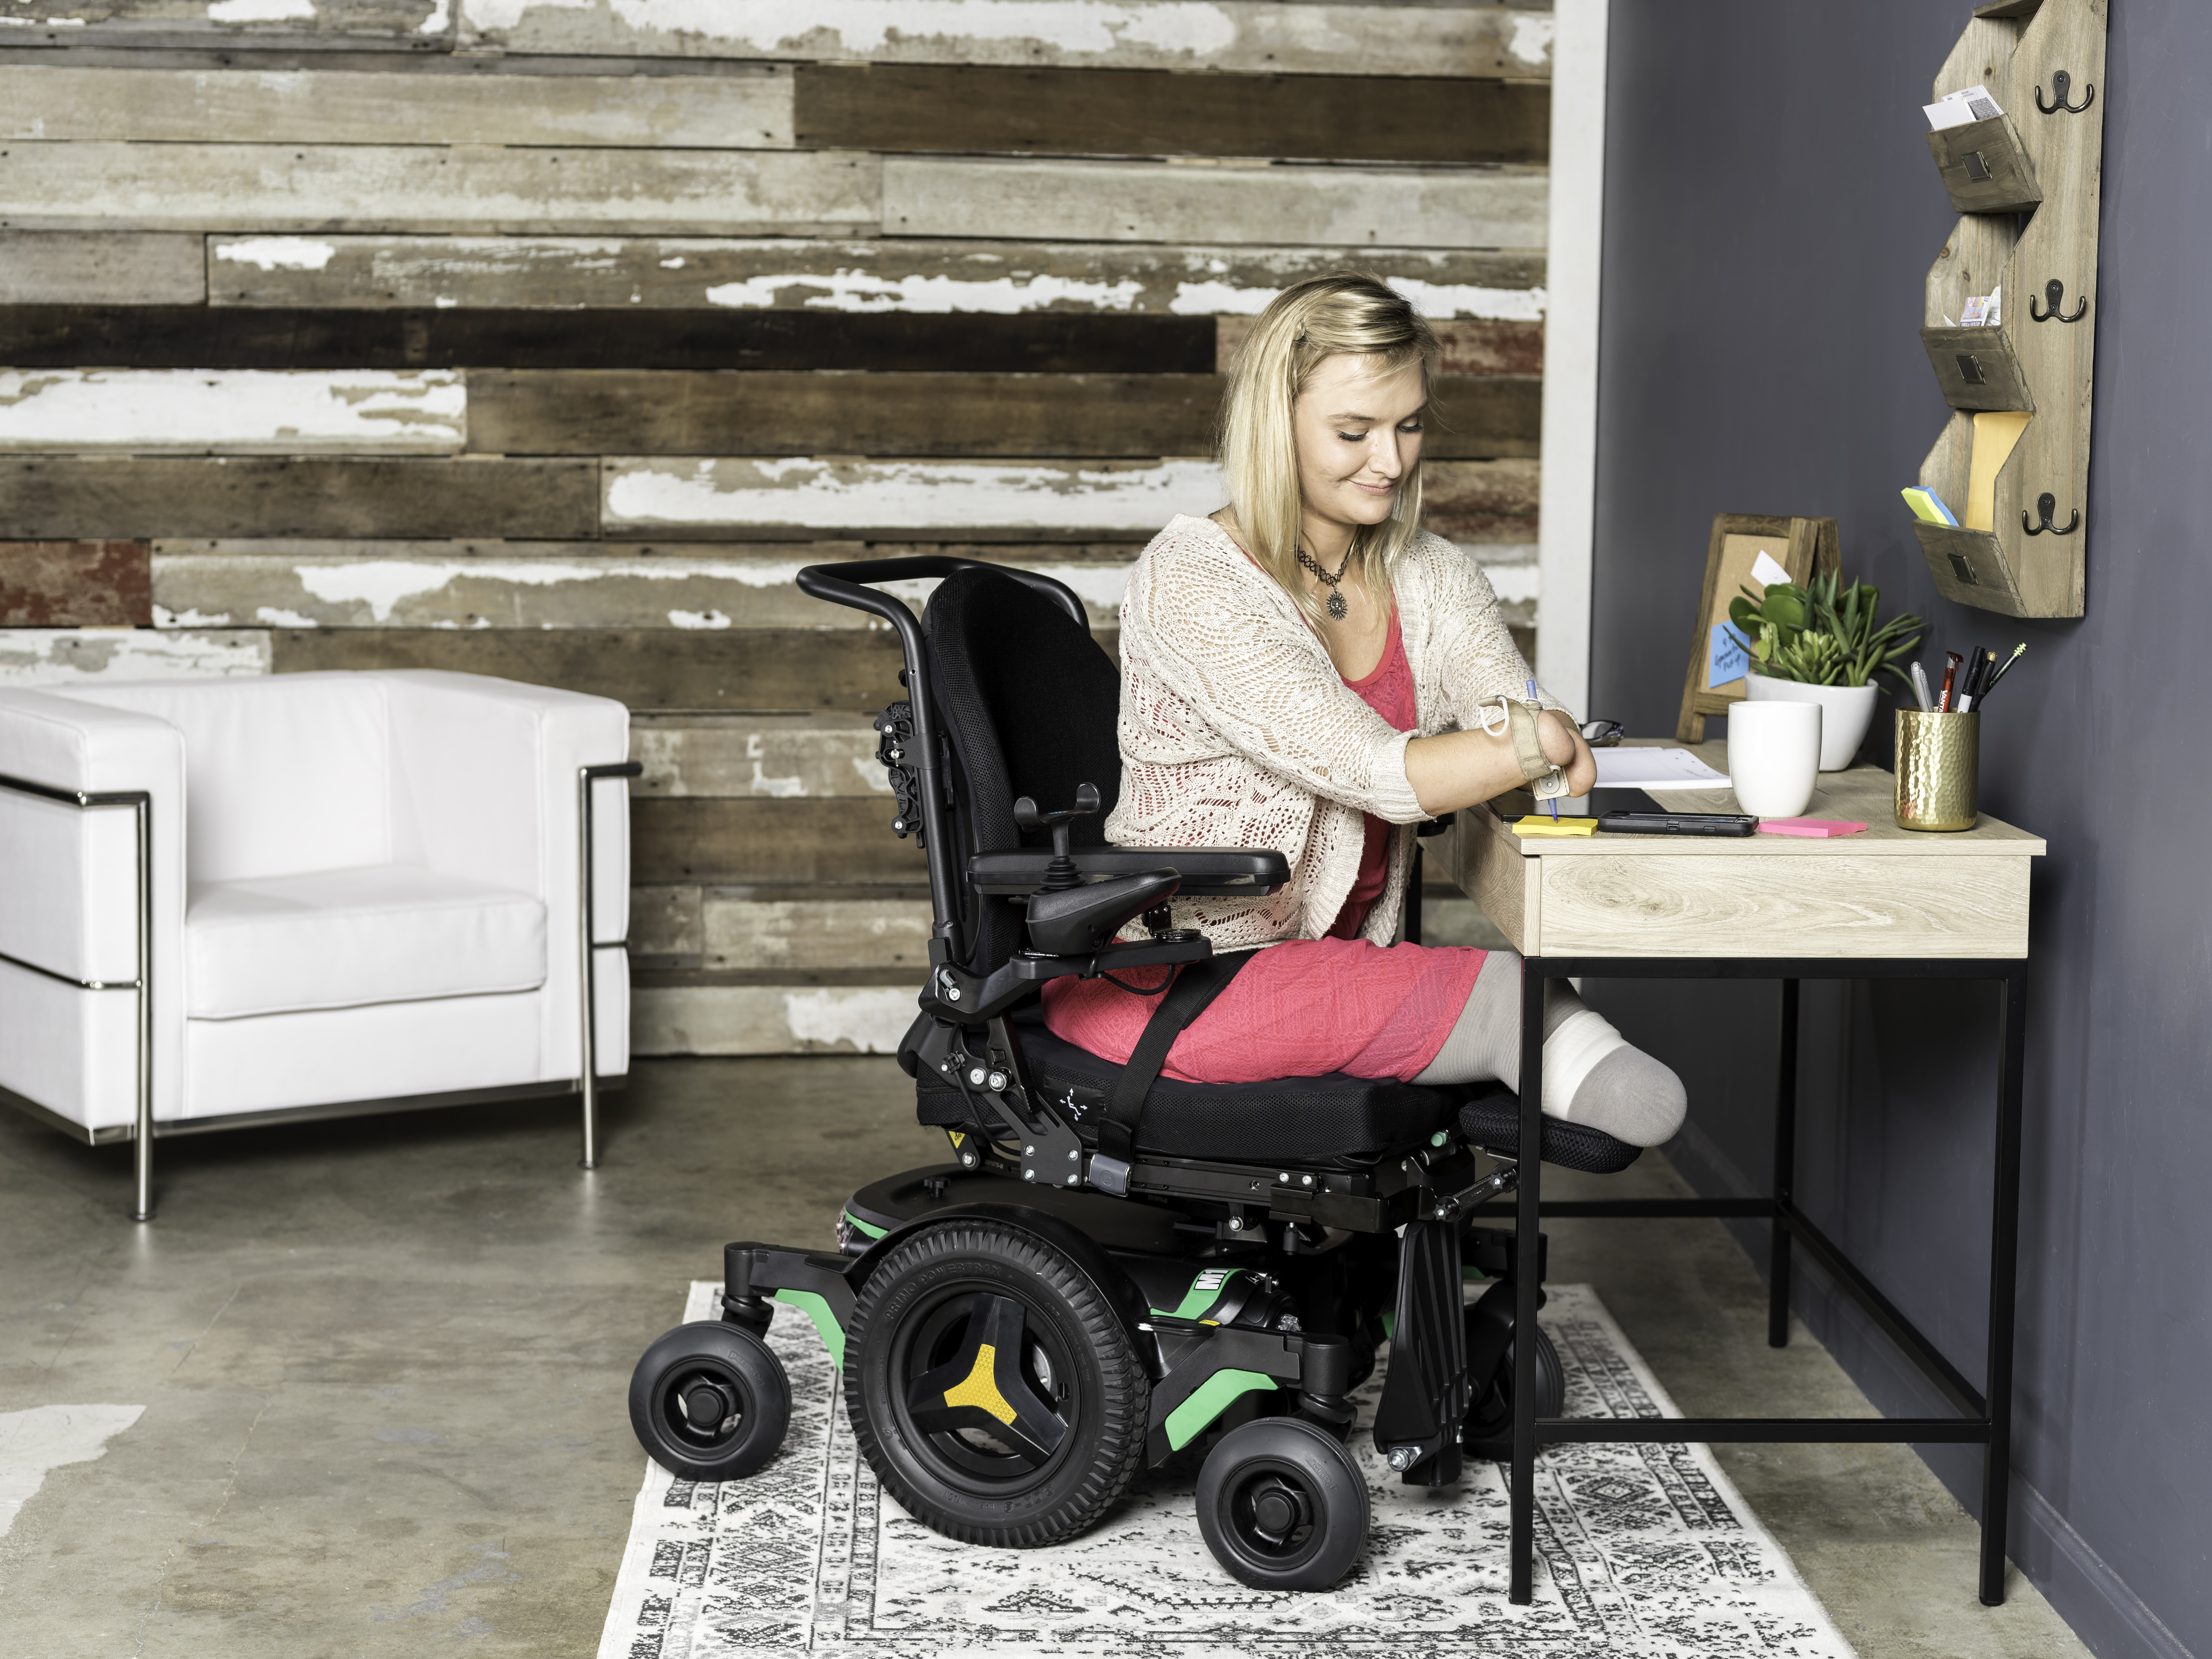 A disabled girl on her M1 power wheelchair